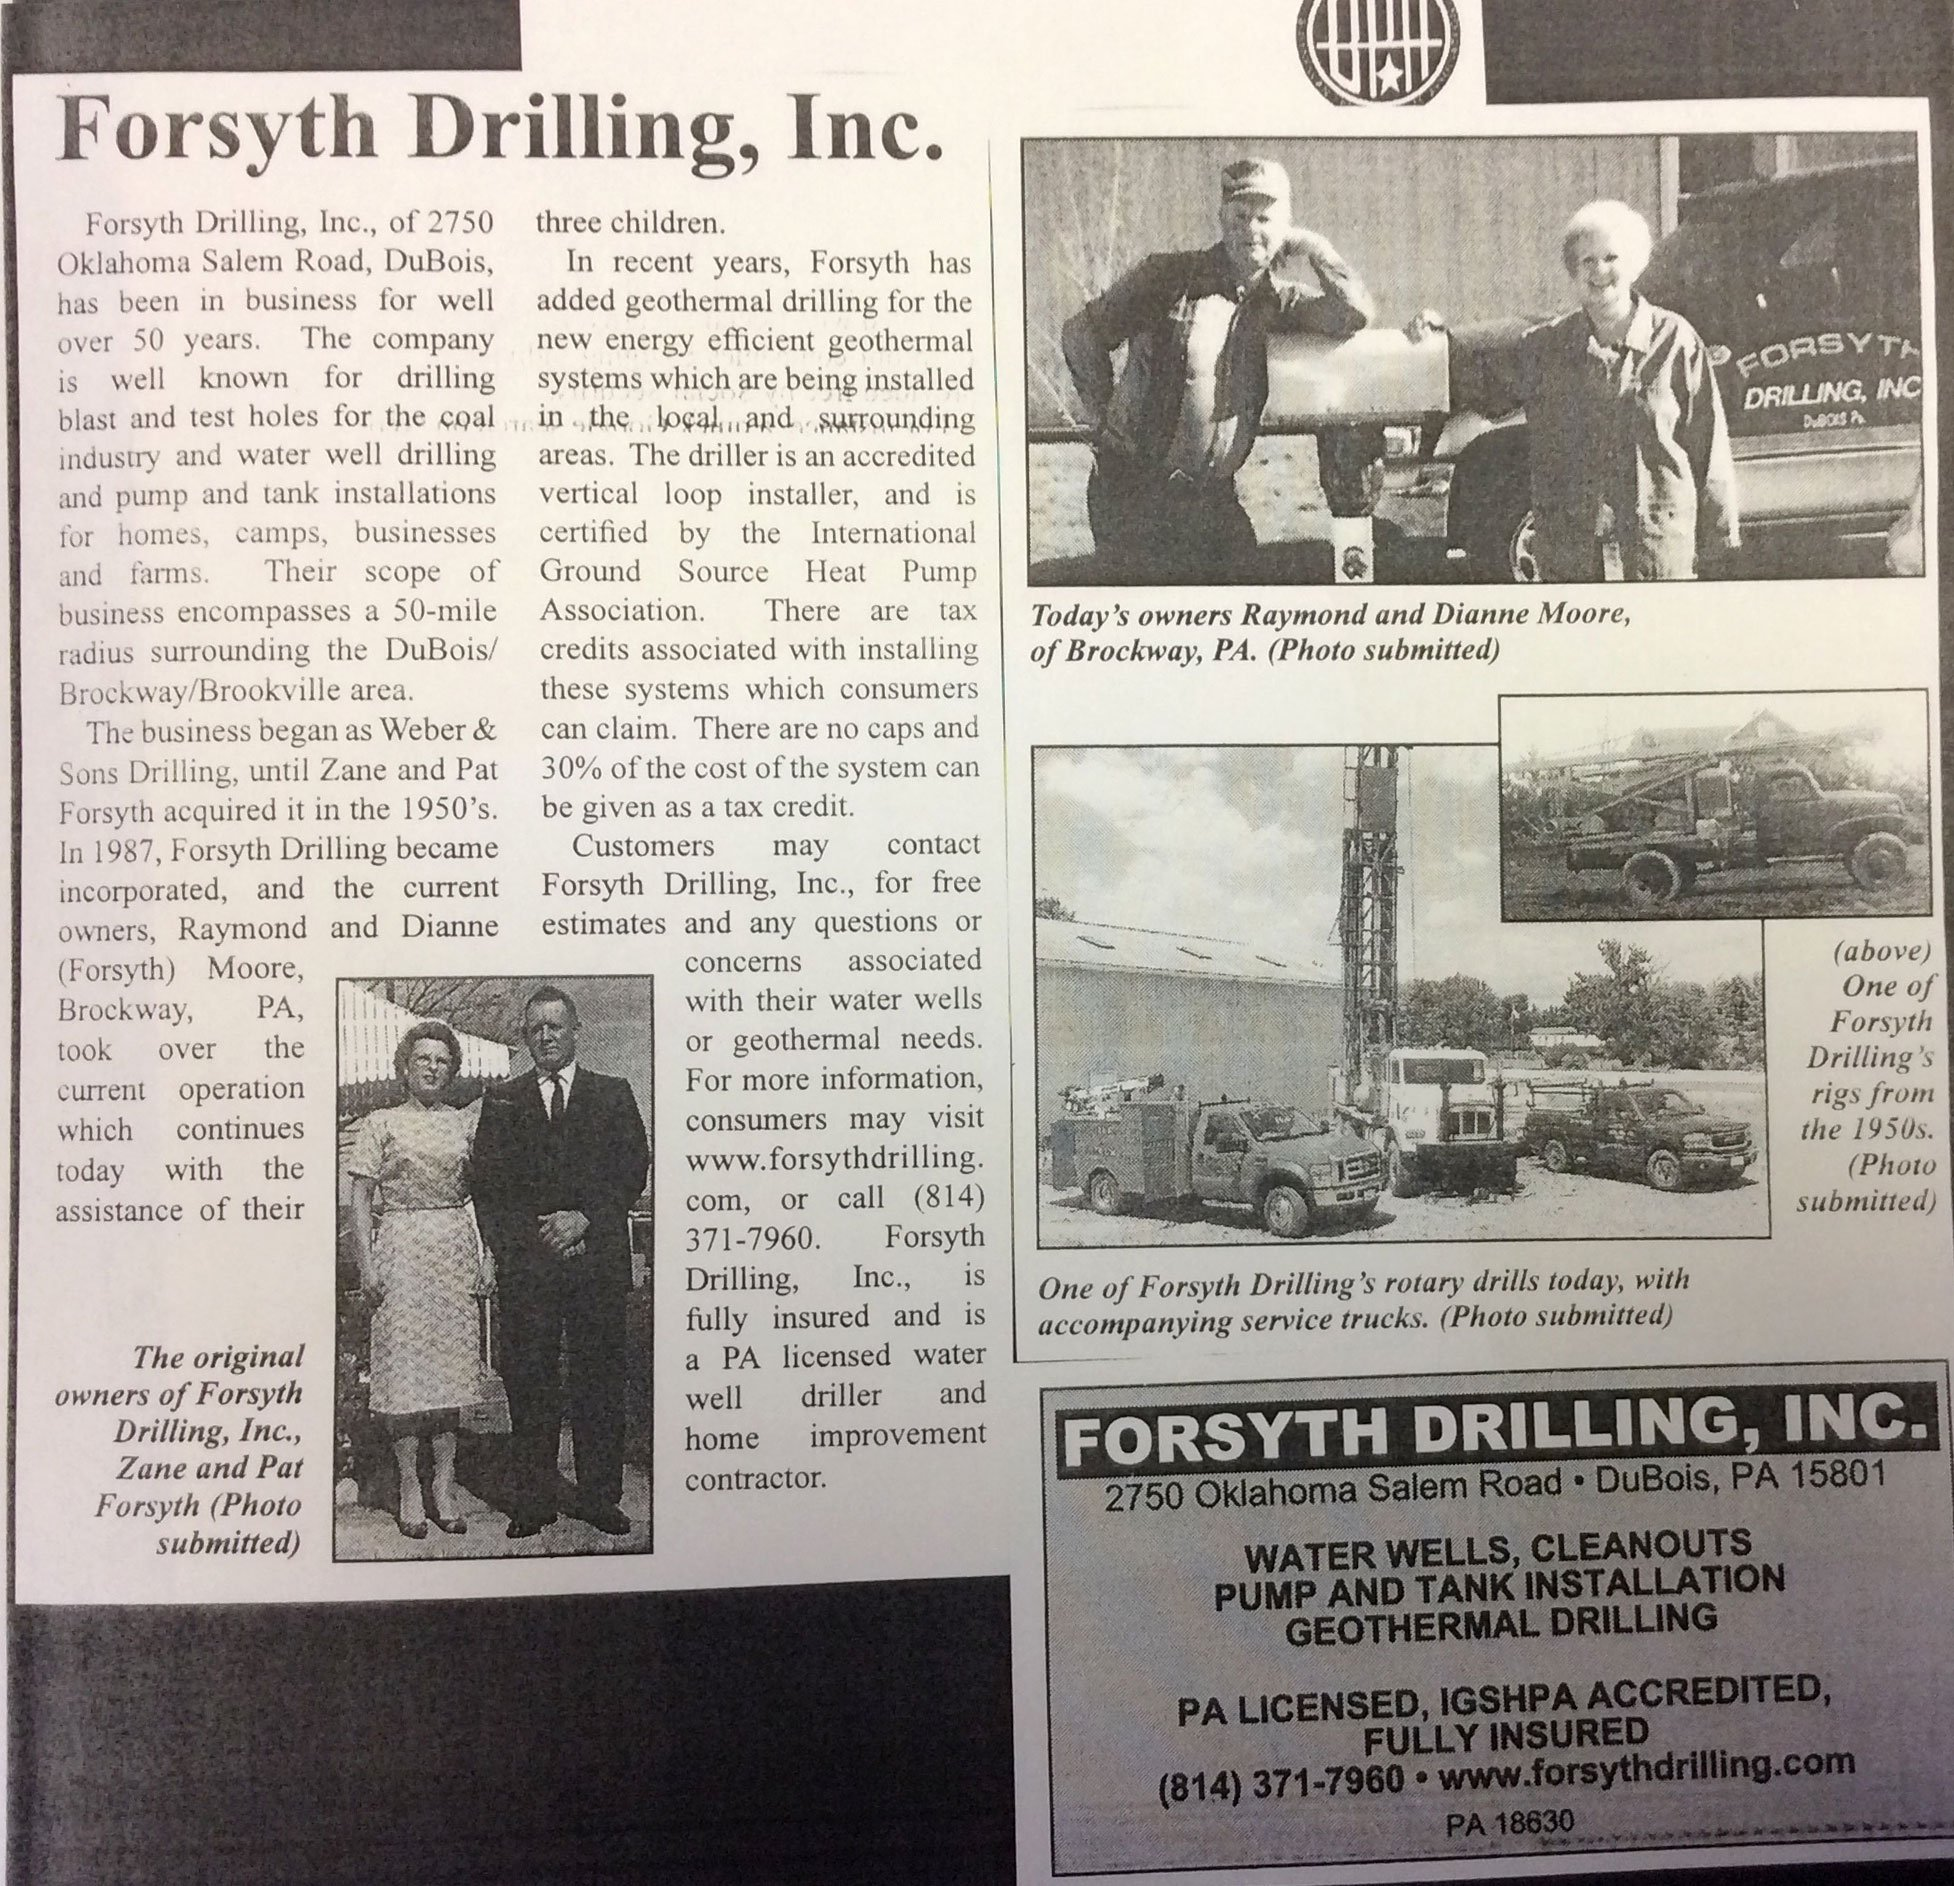 Forsyth Drilling Inc. newspaper cuttings